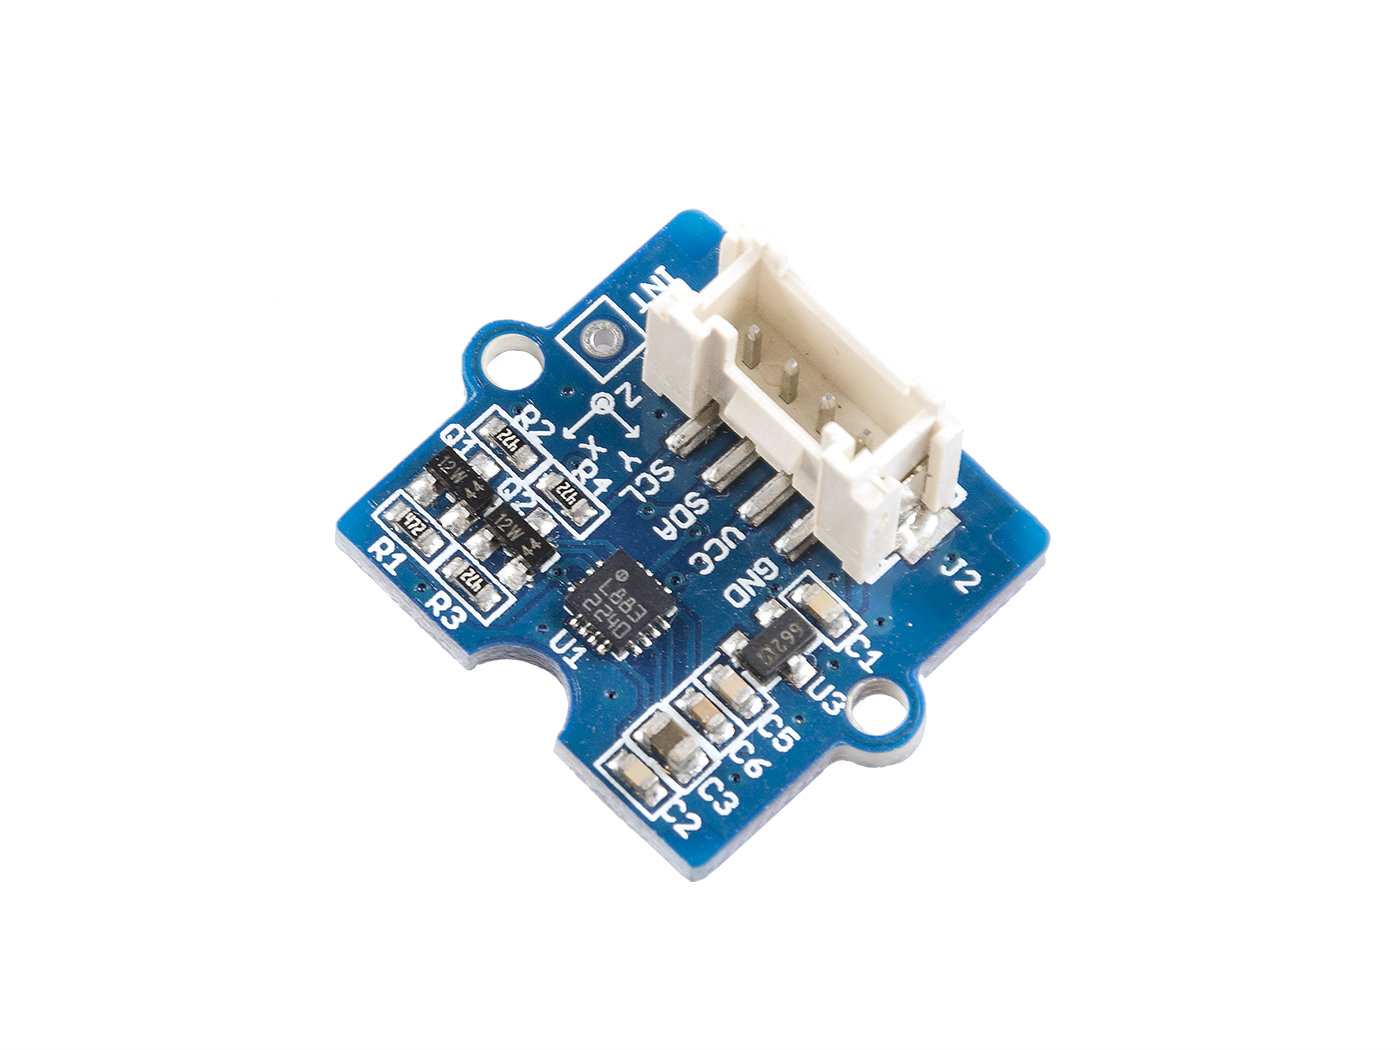 Gps Seeed Studio Module Pcba Pcb Assembly Circuit Board Grove 3 Axis Digital Compass